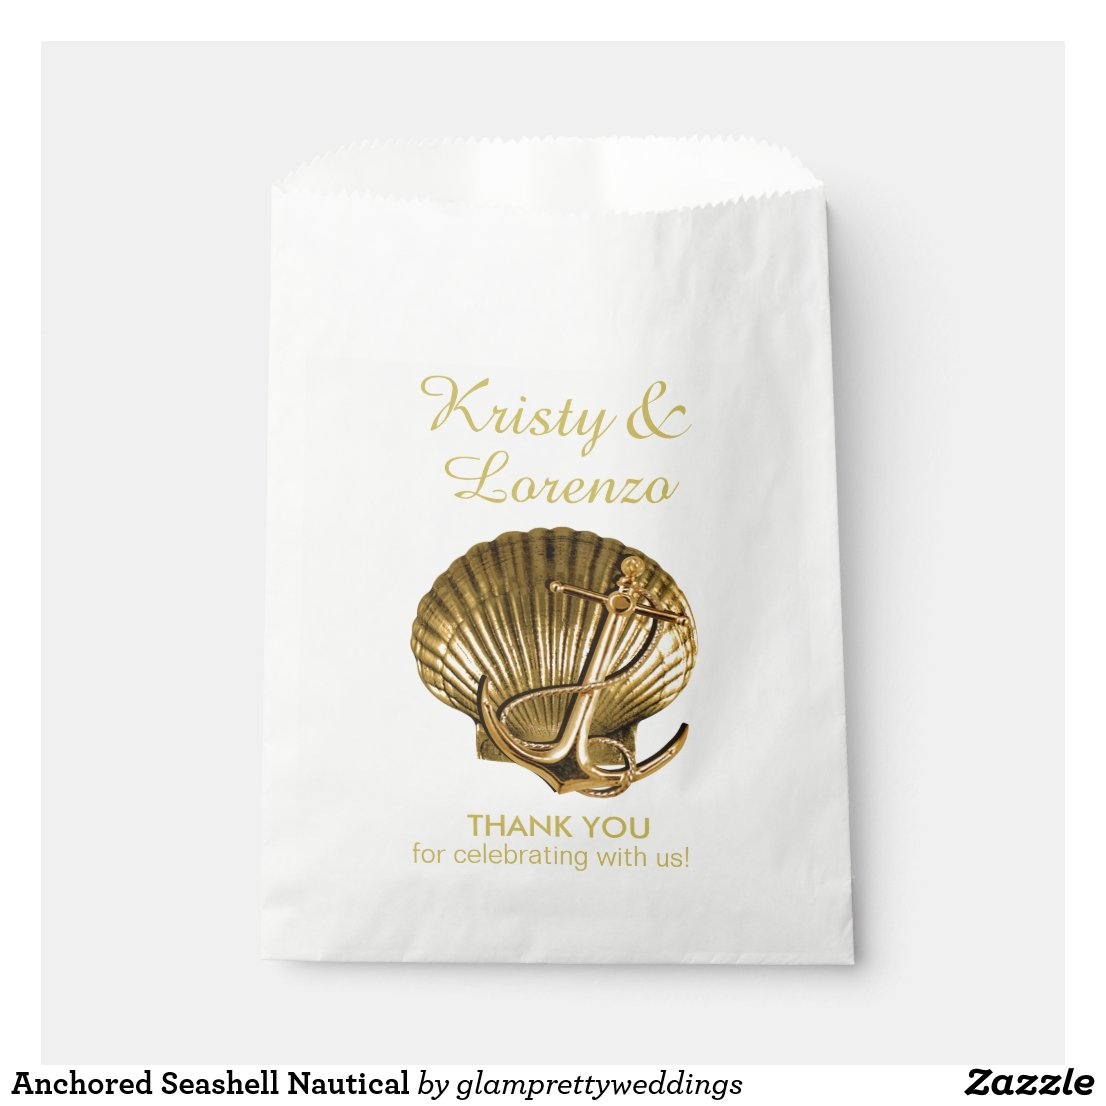 Anchored Seashell Nautical Favor Bag